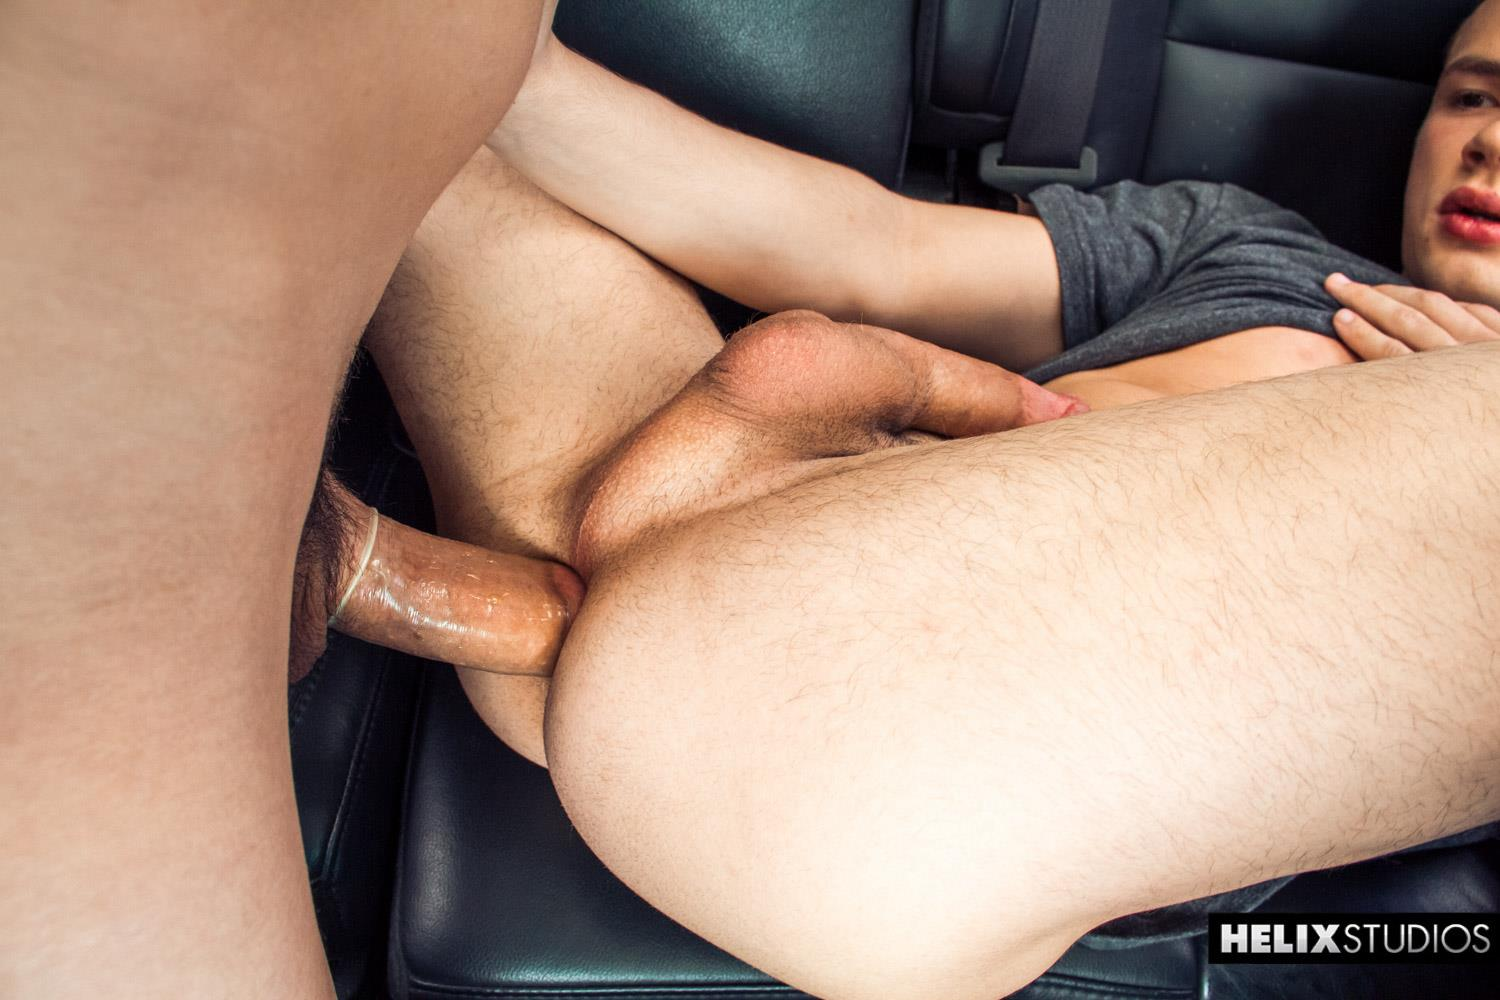 Helix-Studios-Troy-Ryan-and-Logan-Cross-Big-Cock-Twinks-Fucking-In-A-Car-Amateur-Gay-Porn-21 Troy Ryan Fucking Another Twink In The Backseat Of His Car